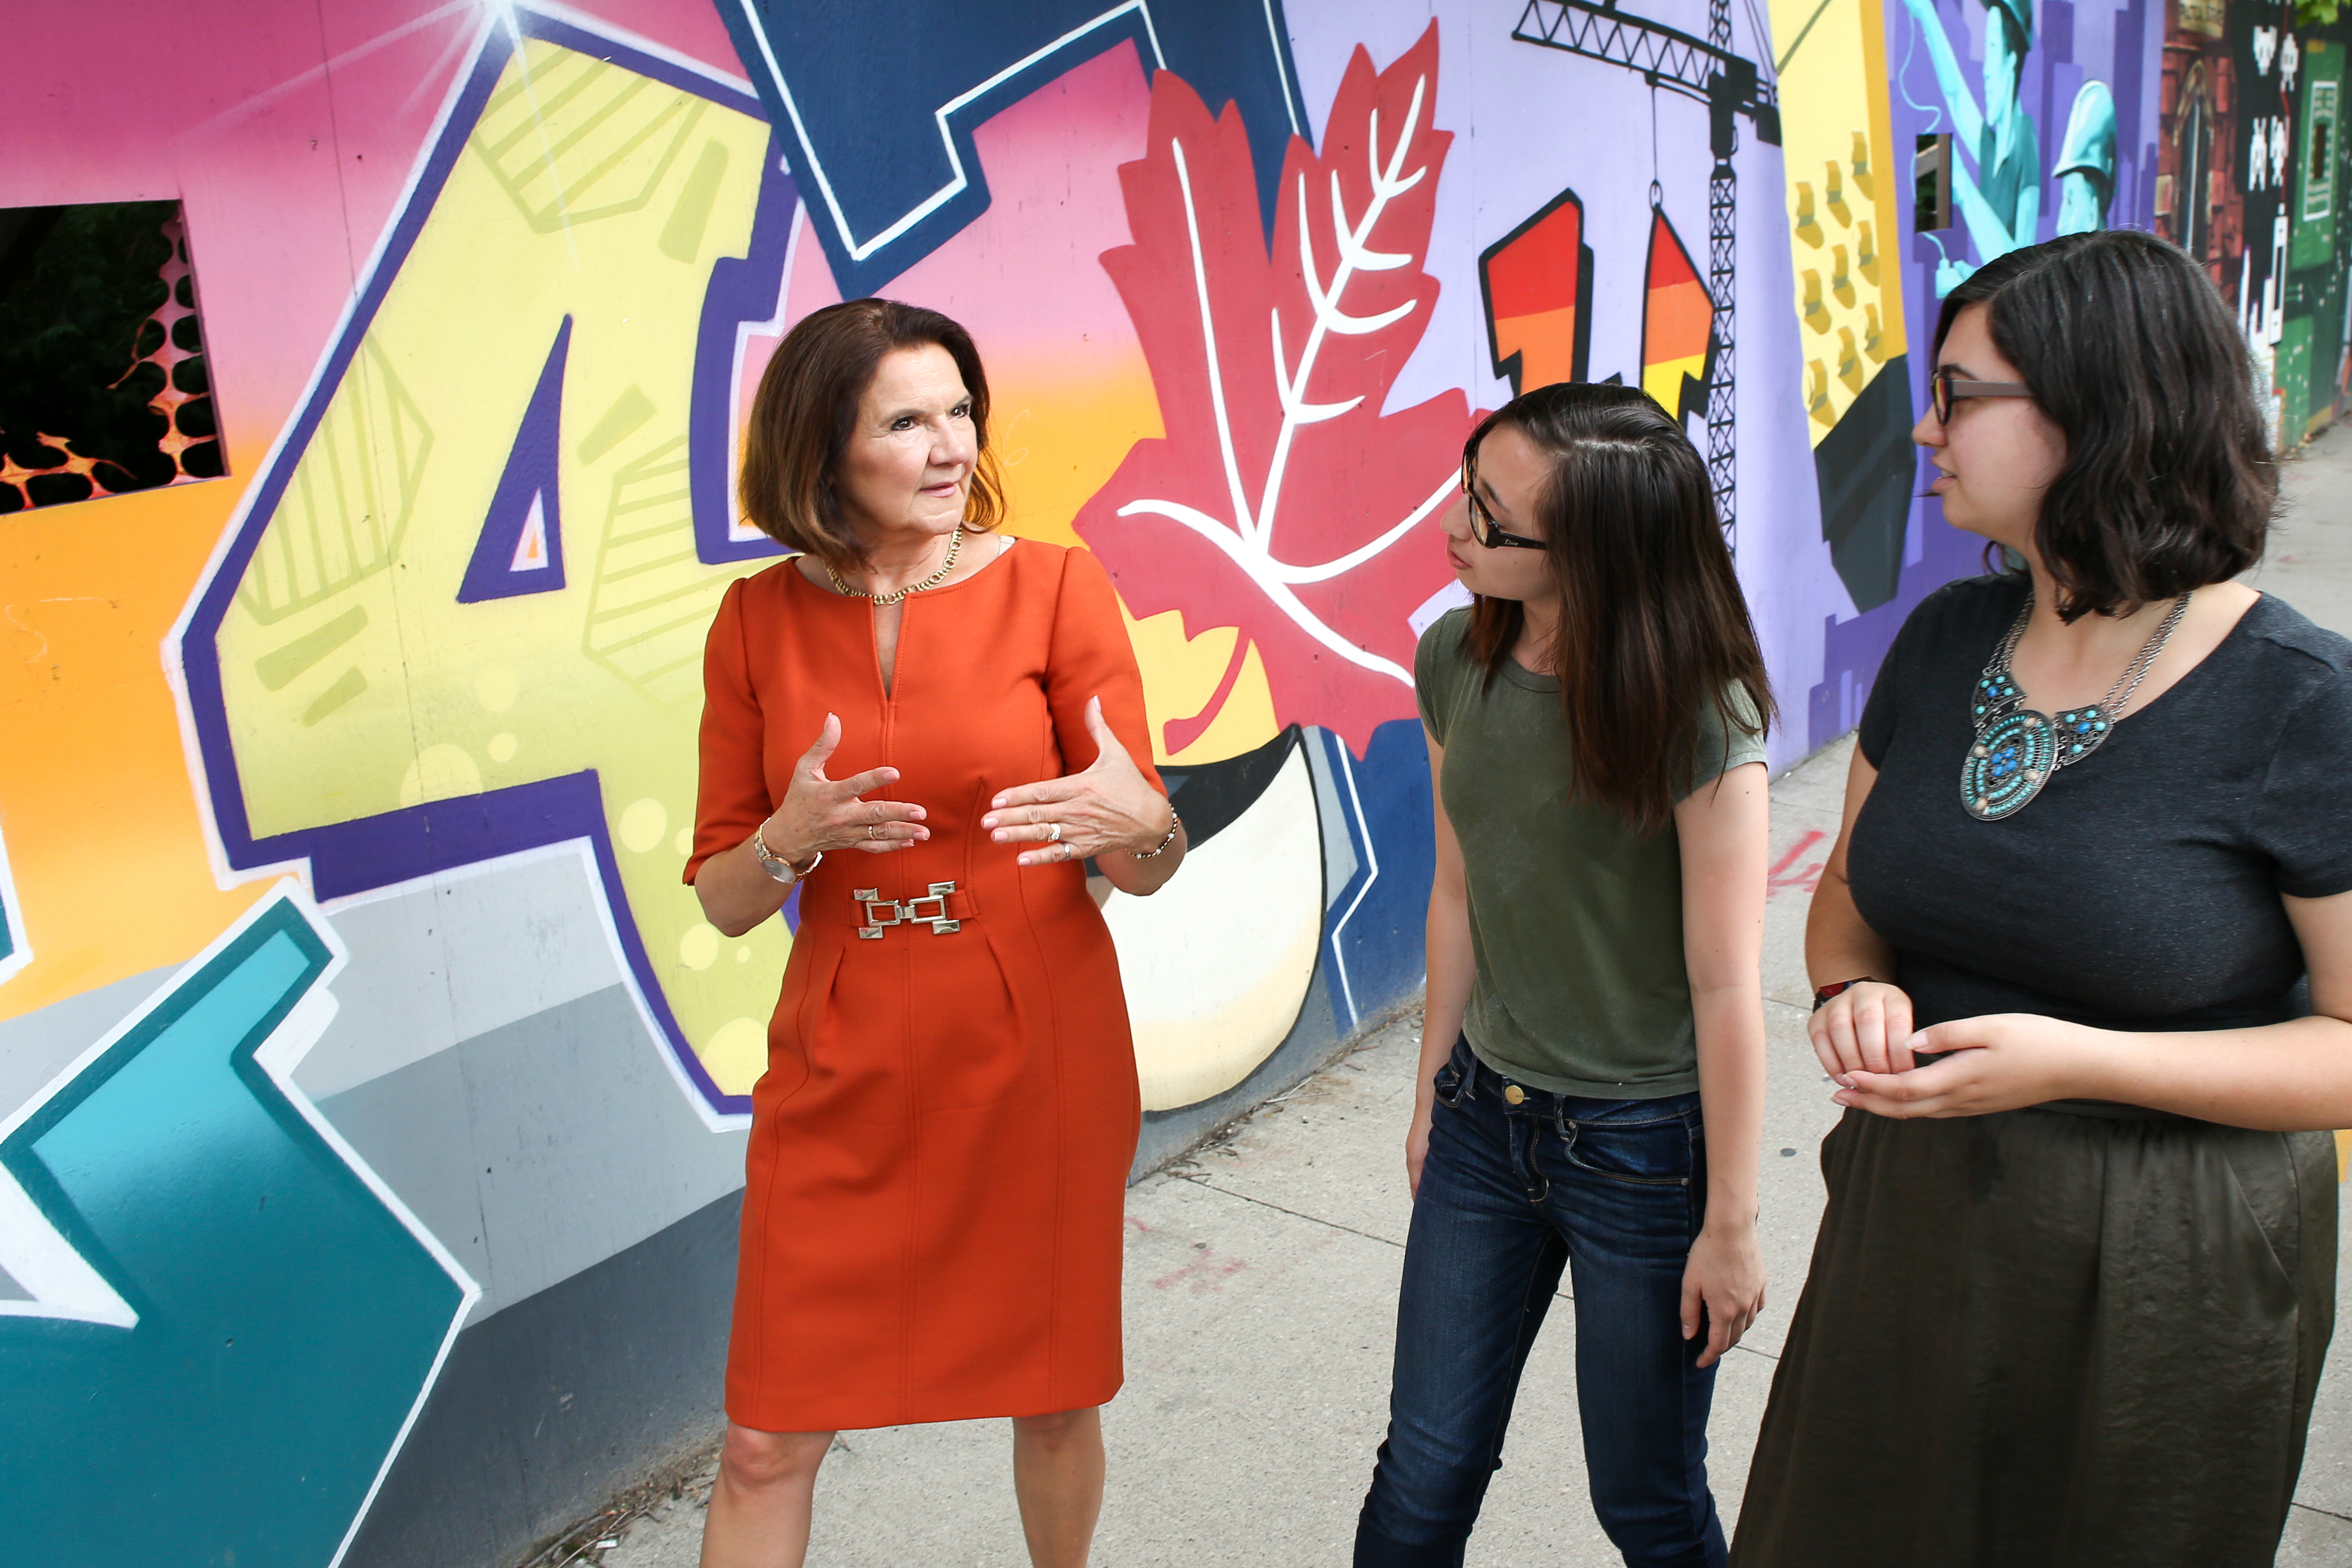 Dean Cristina Amon speaks with students at the site of the new Centre for Engineering Innovation & Entrepreneurship, a vibrant hub for engineering education, innovation and commercialization by entrepreneurship. (Credit: Roberta Baker)